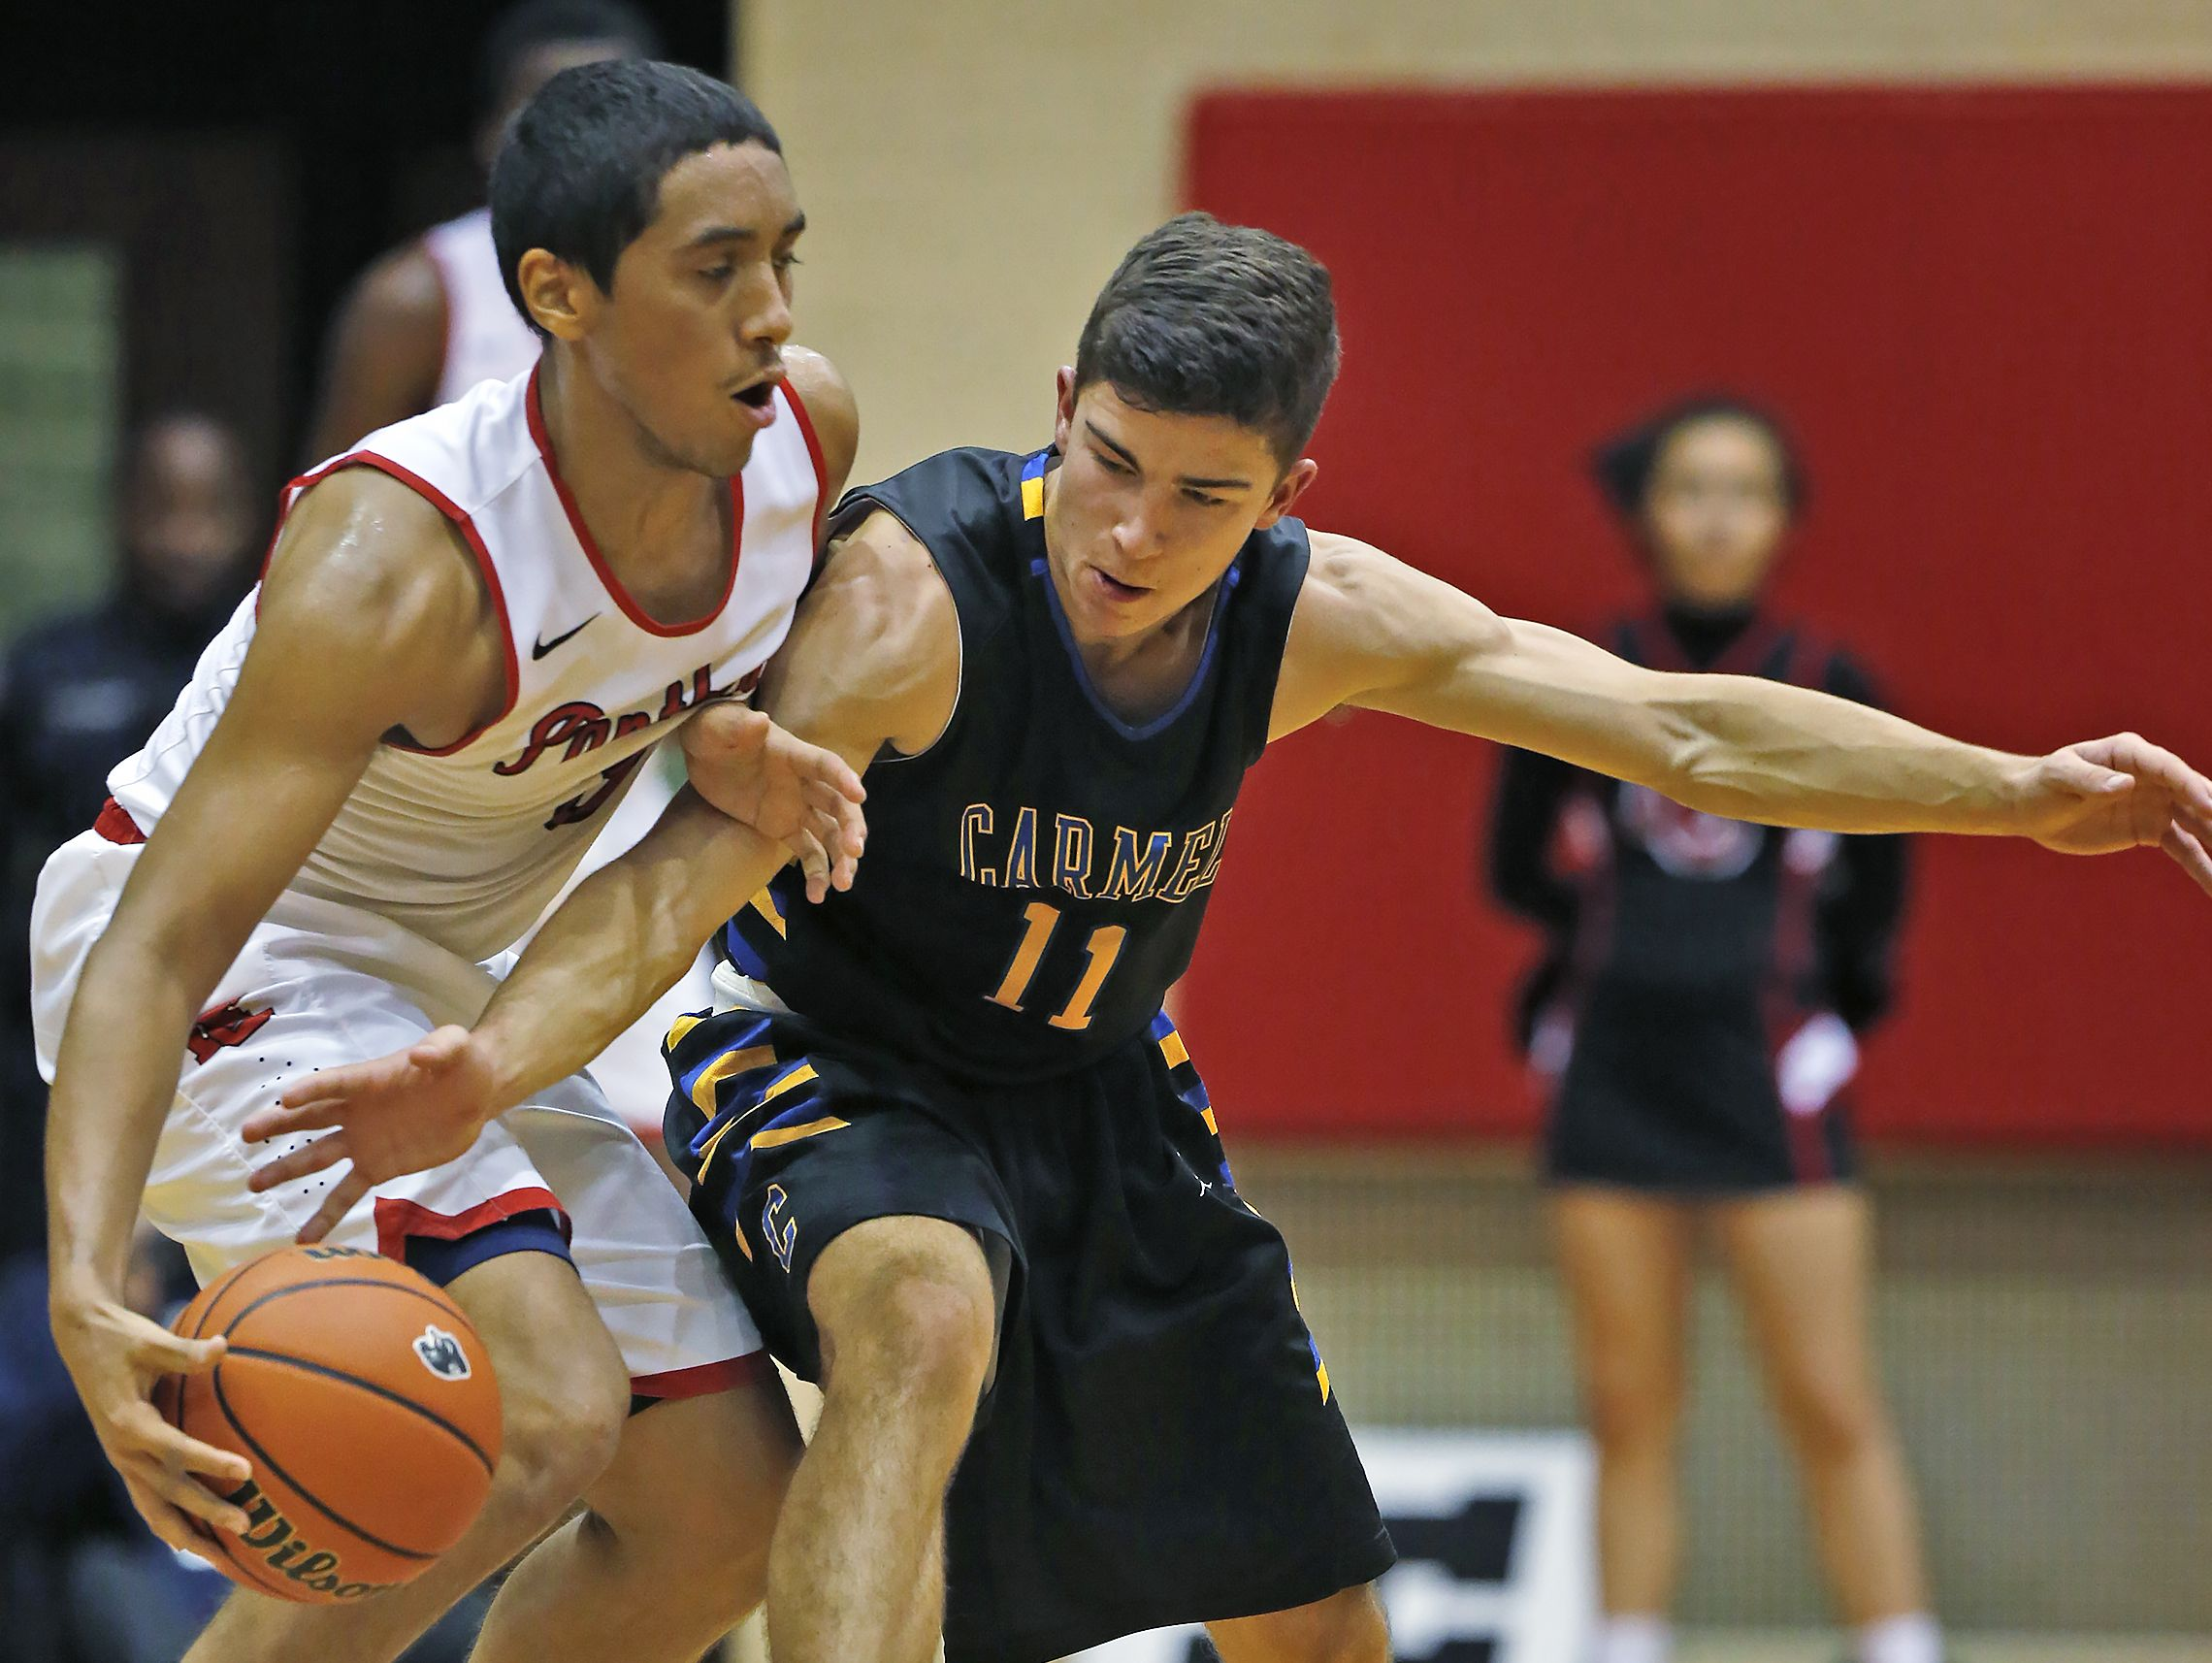 North Central and Carmel remain Nos. 1 and 2 in Kyle Neddenriep's updated Fab 15.